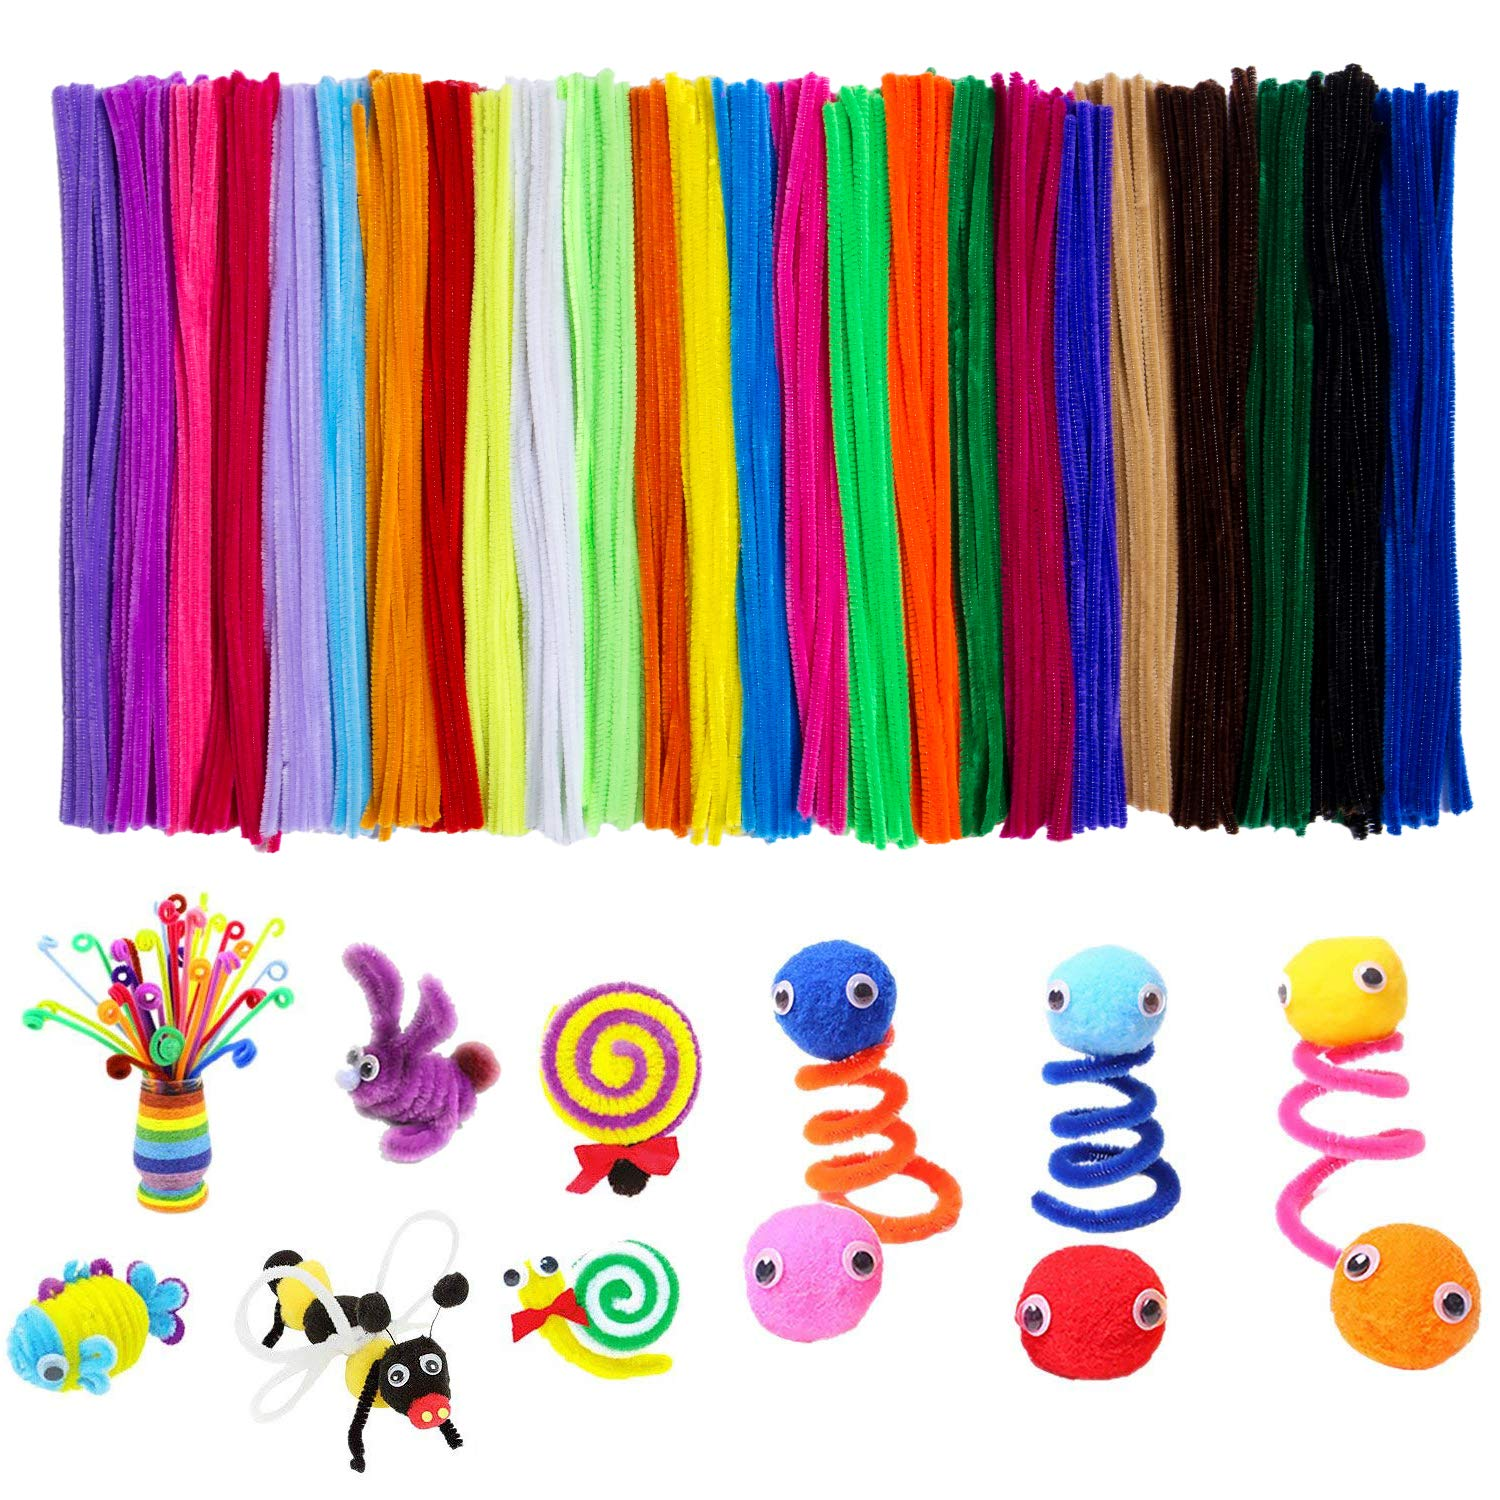 Acerich 500 Pcs Pipe Cleaners Colored Chenille Stems for DIY Art Crafts (6 mm x 12 Inch) SKU-073-1